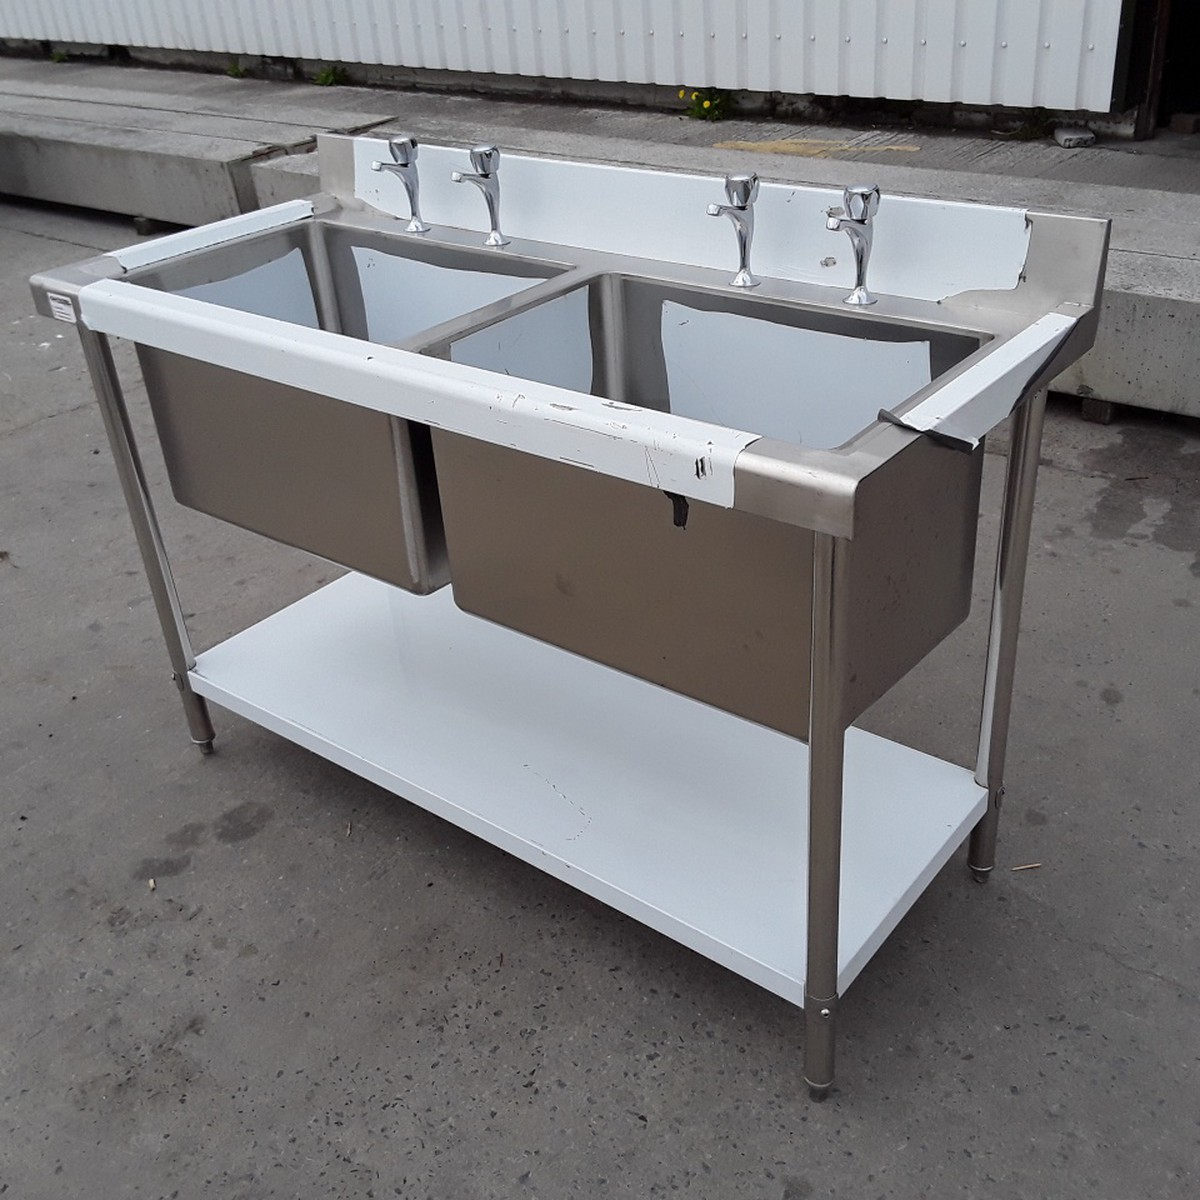 used kitchen sinks for sale antique red cabinets secondhand catering equipment double new b grade